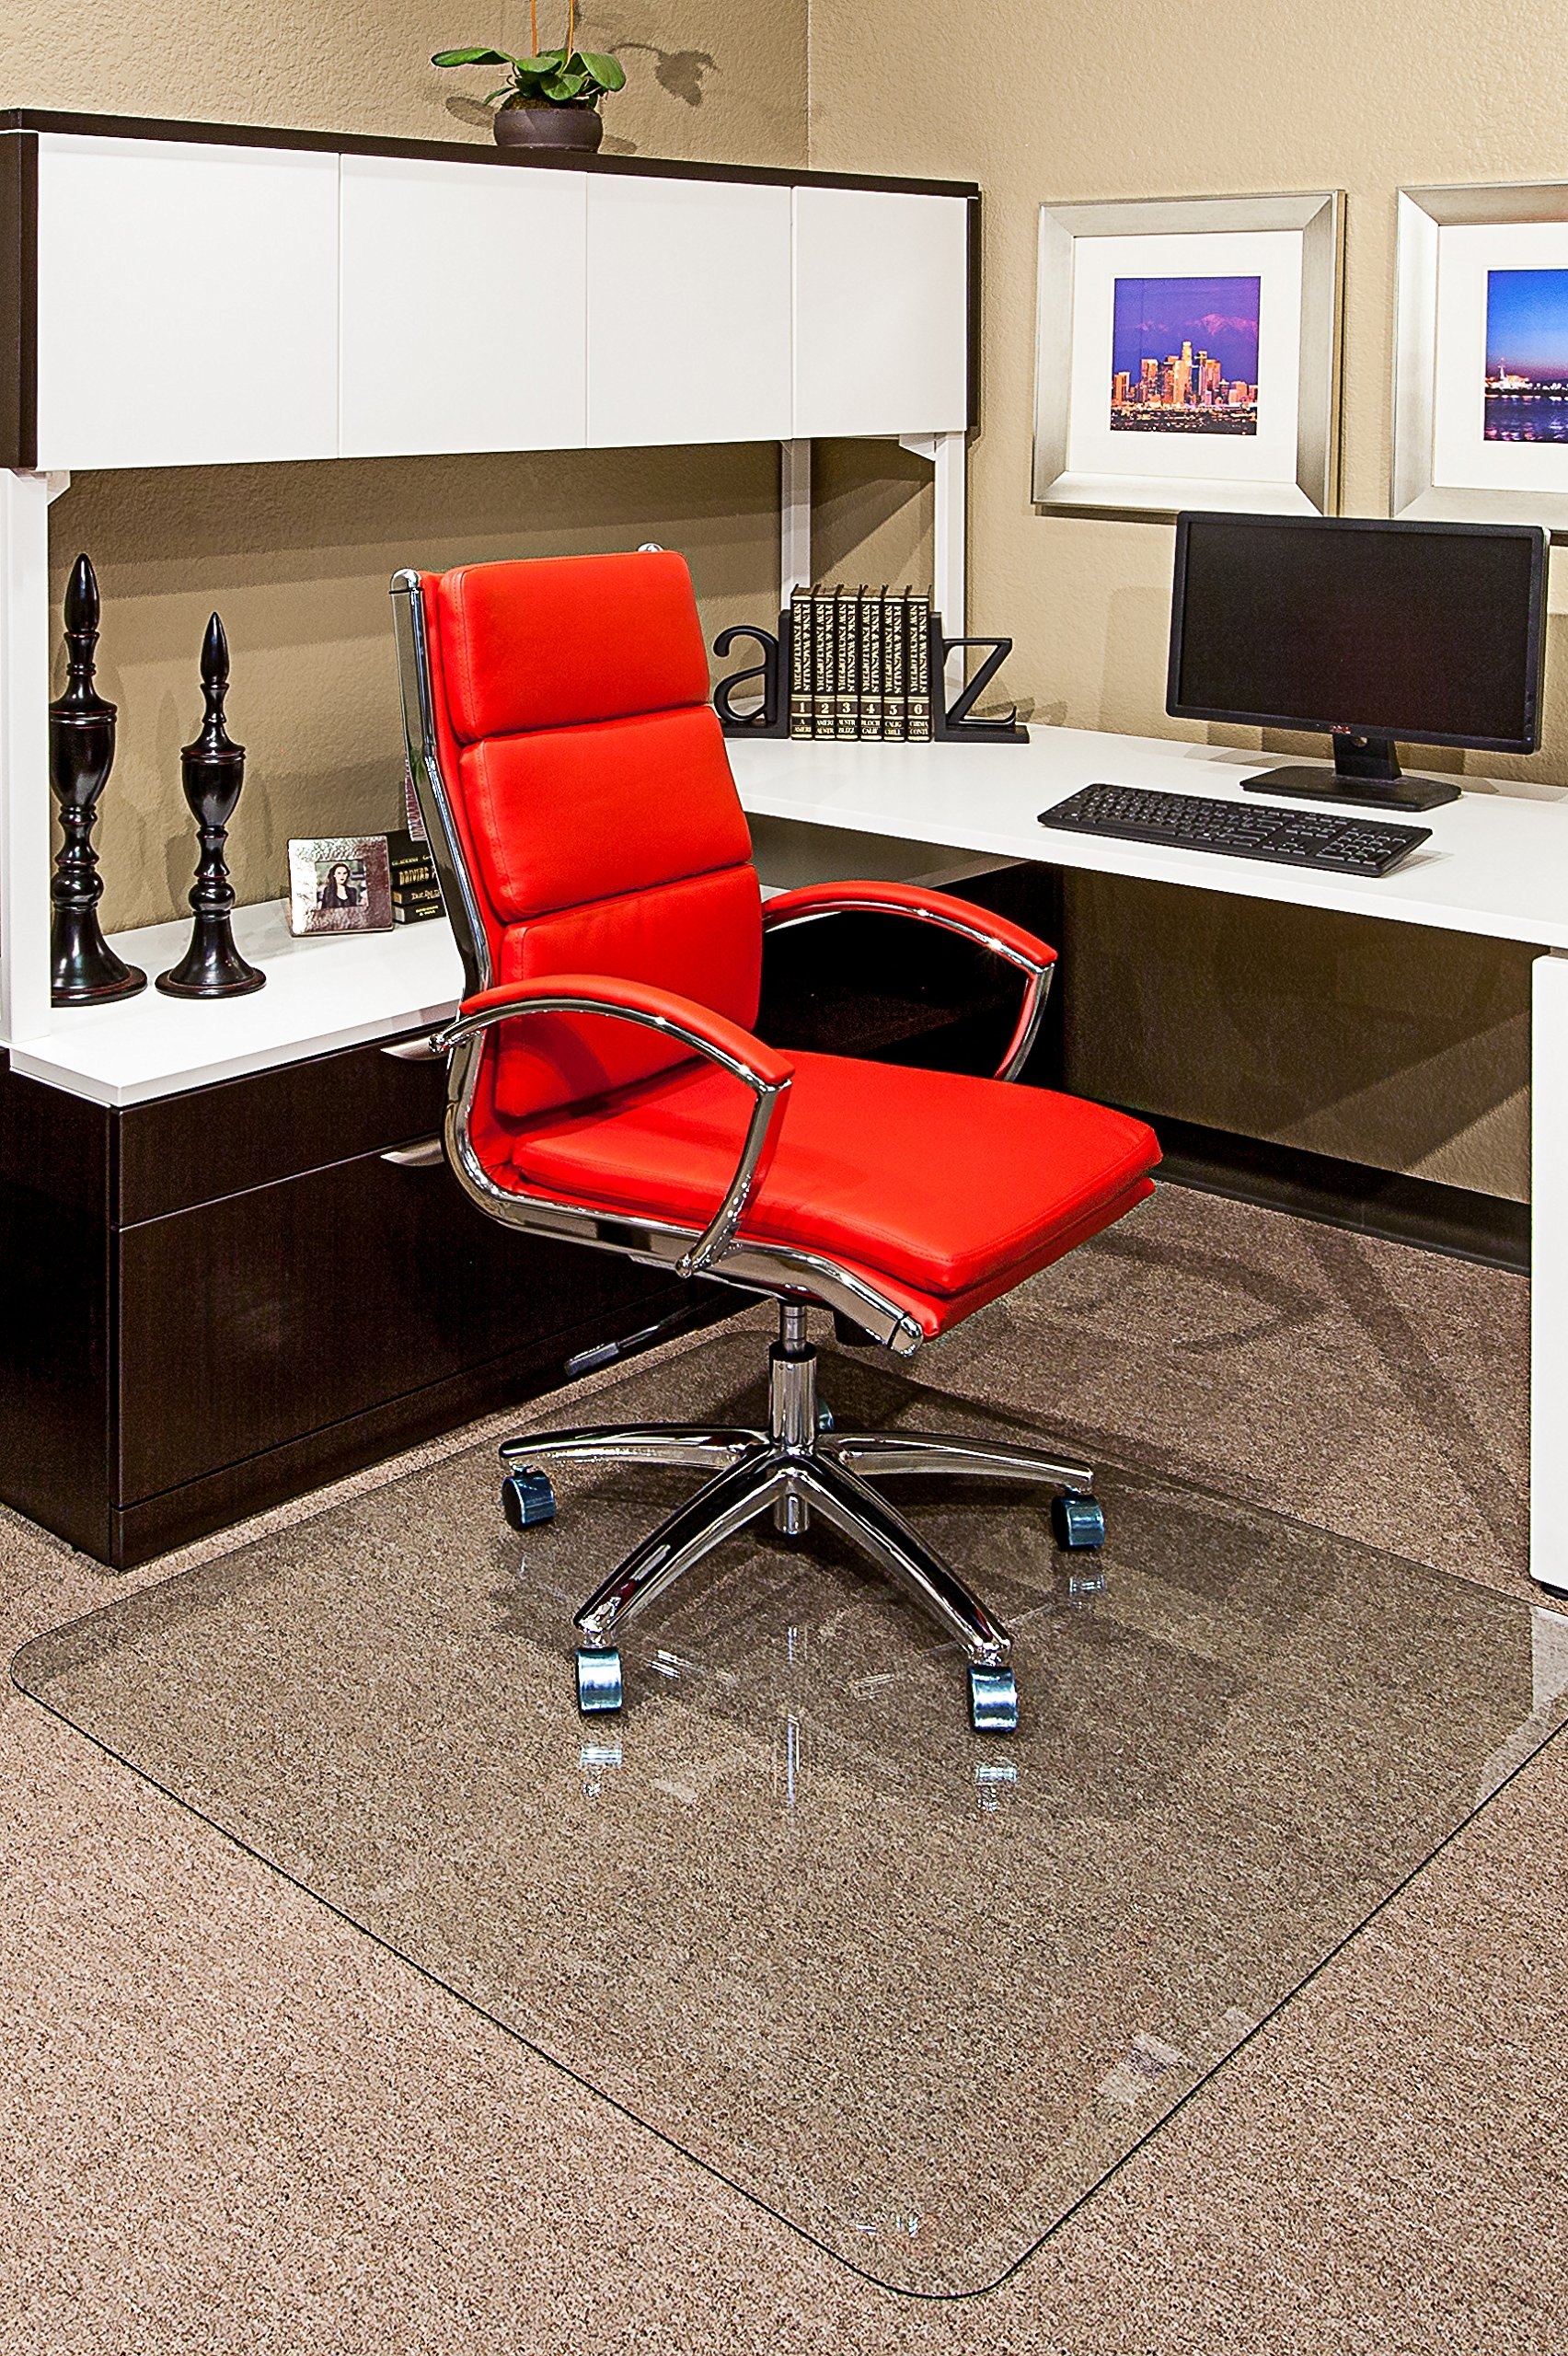 36'' x 46'' Clearly Innovative Lifetime Glass Chairmat with Patented Beveled Edges